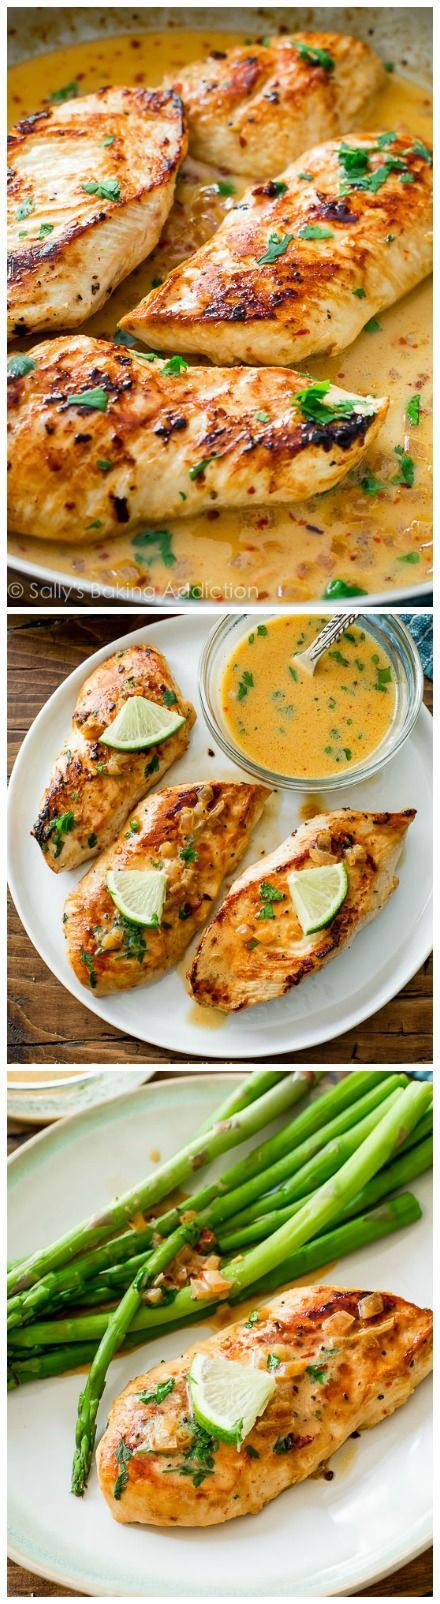 Talk about FLAVOR! Crispy skillet chicken with the creamiest, most flavorful sauce.: